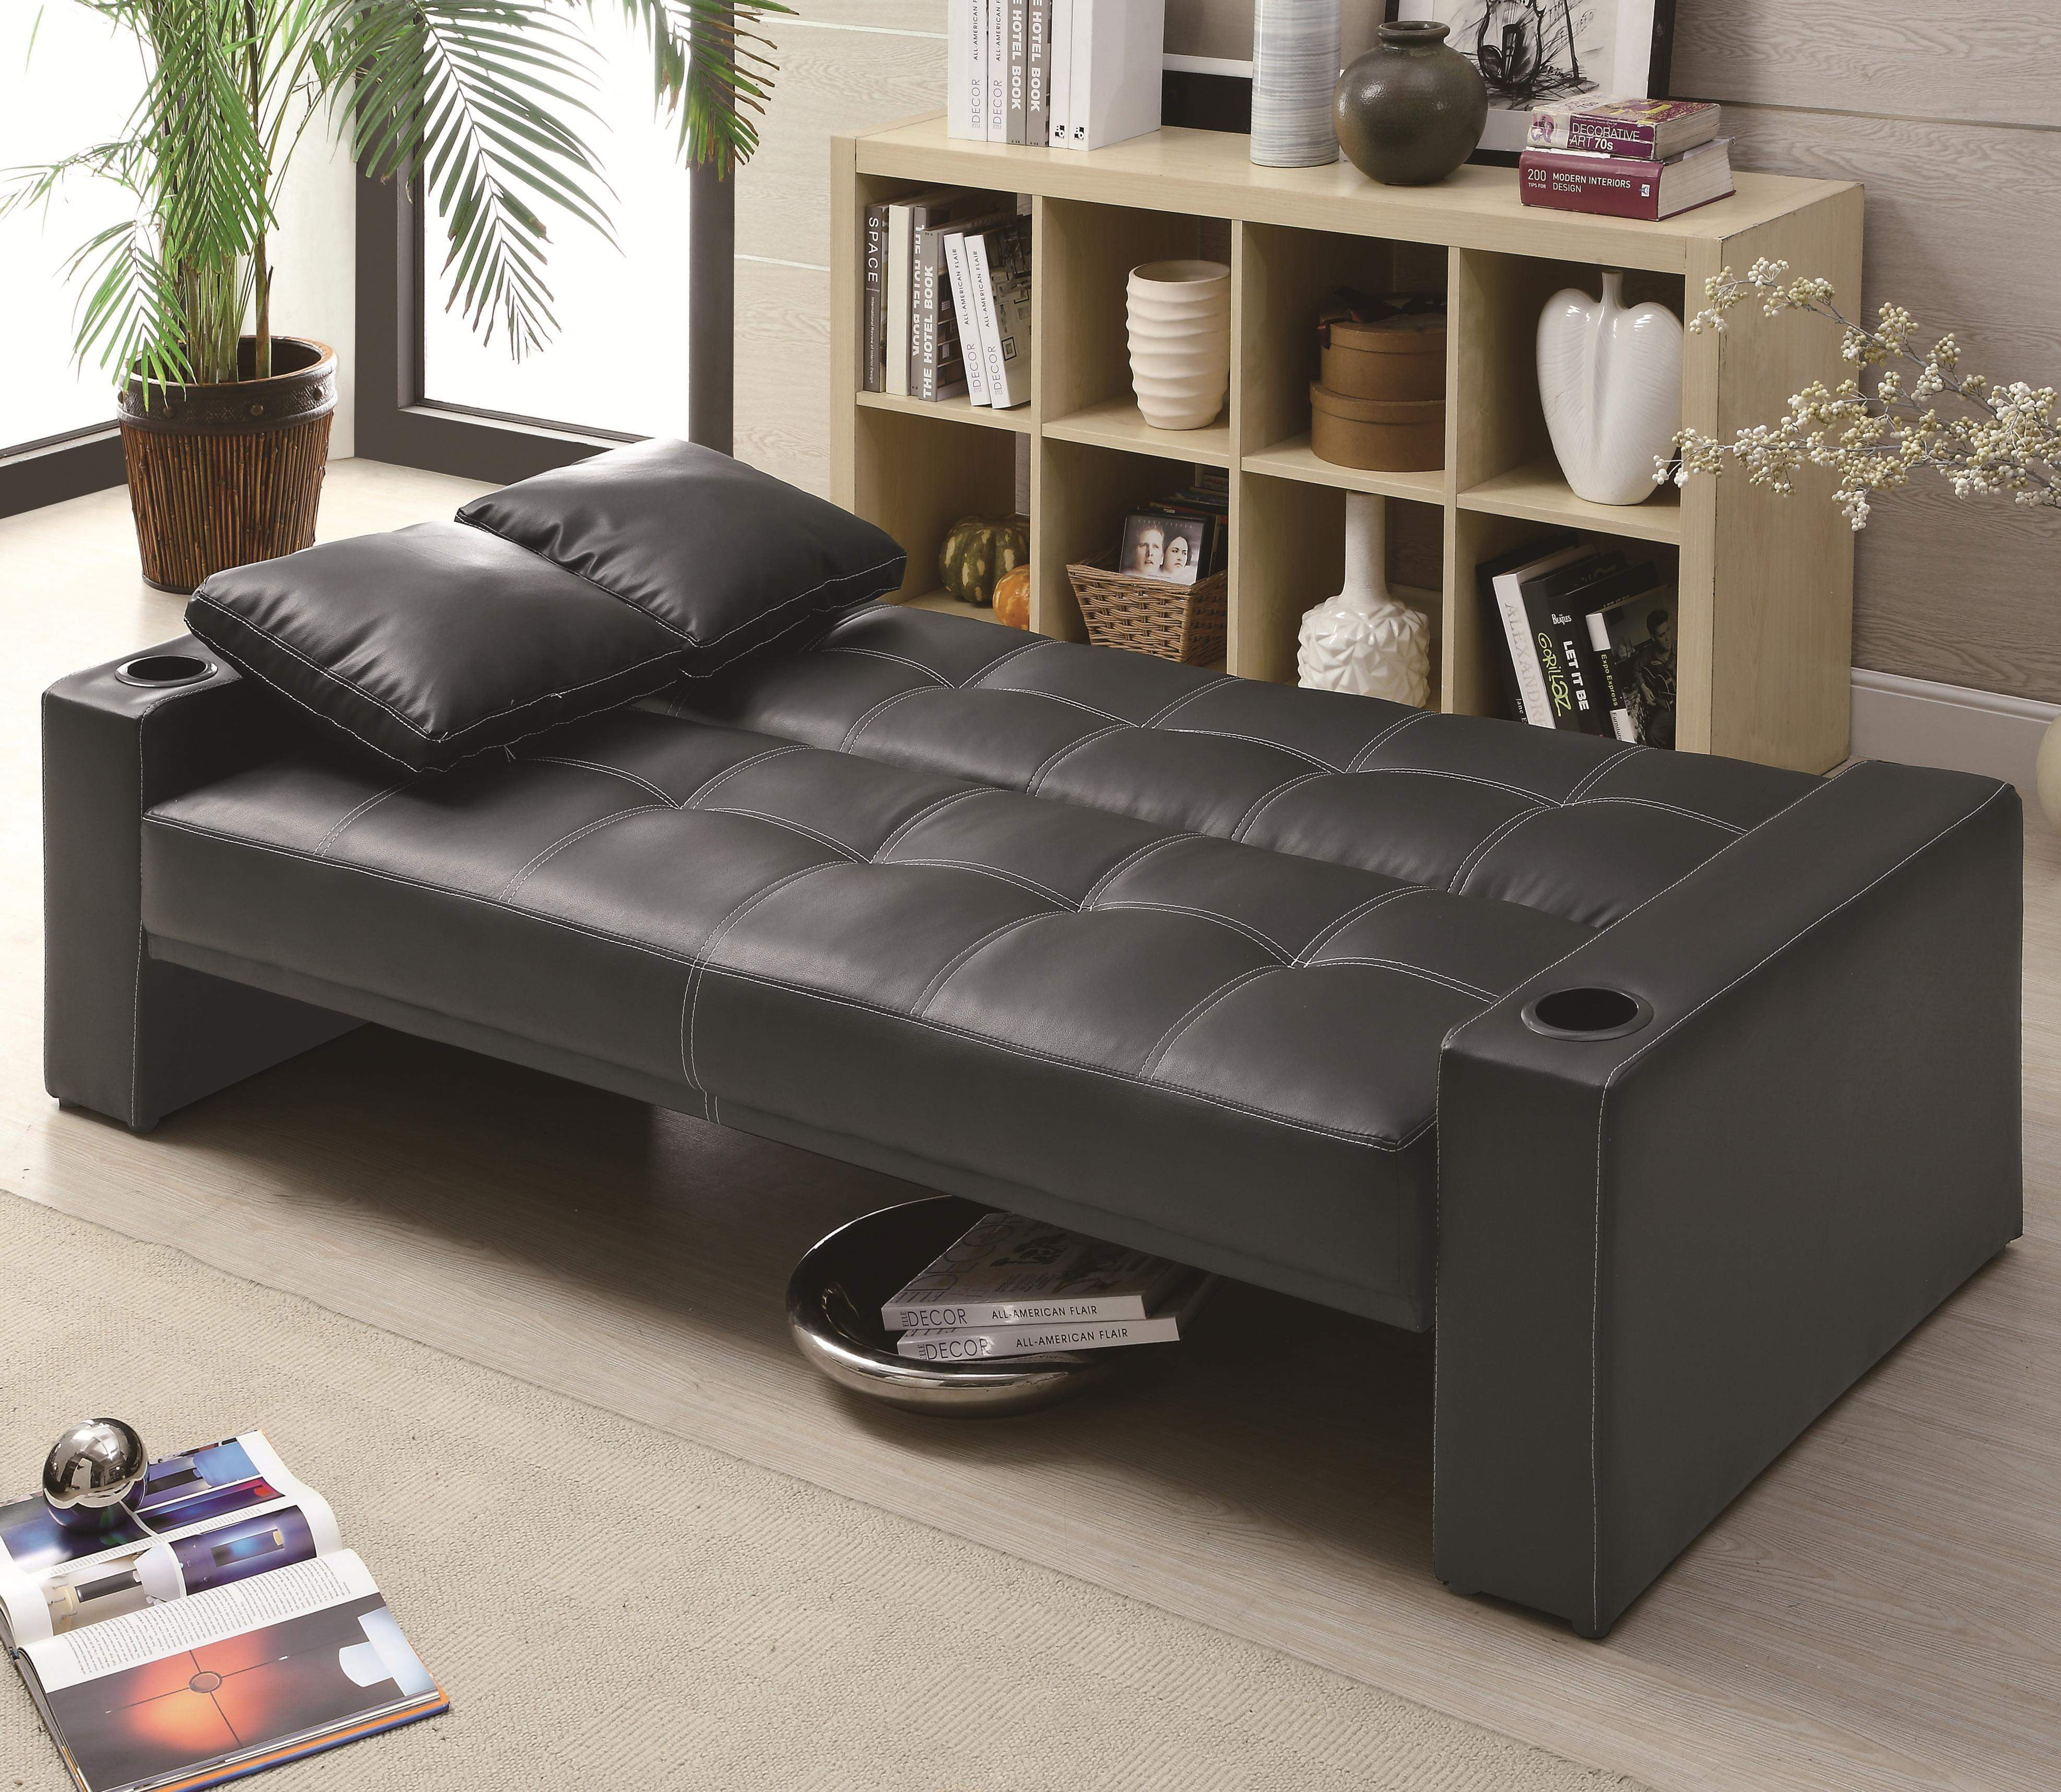 Modern Contemporary Futon Sofa Sleeper With Built In Cup